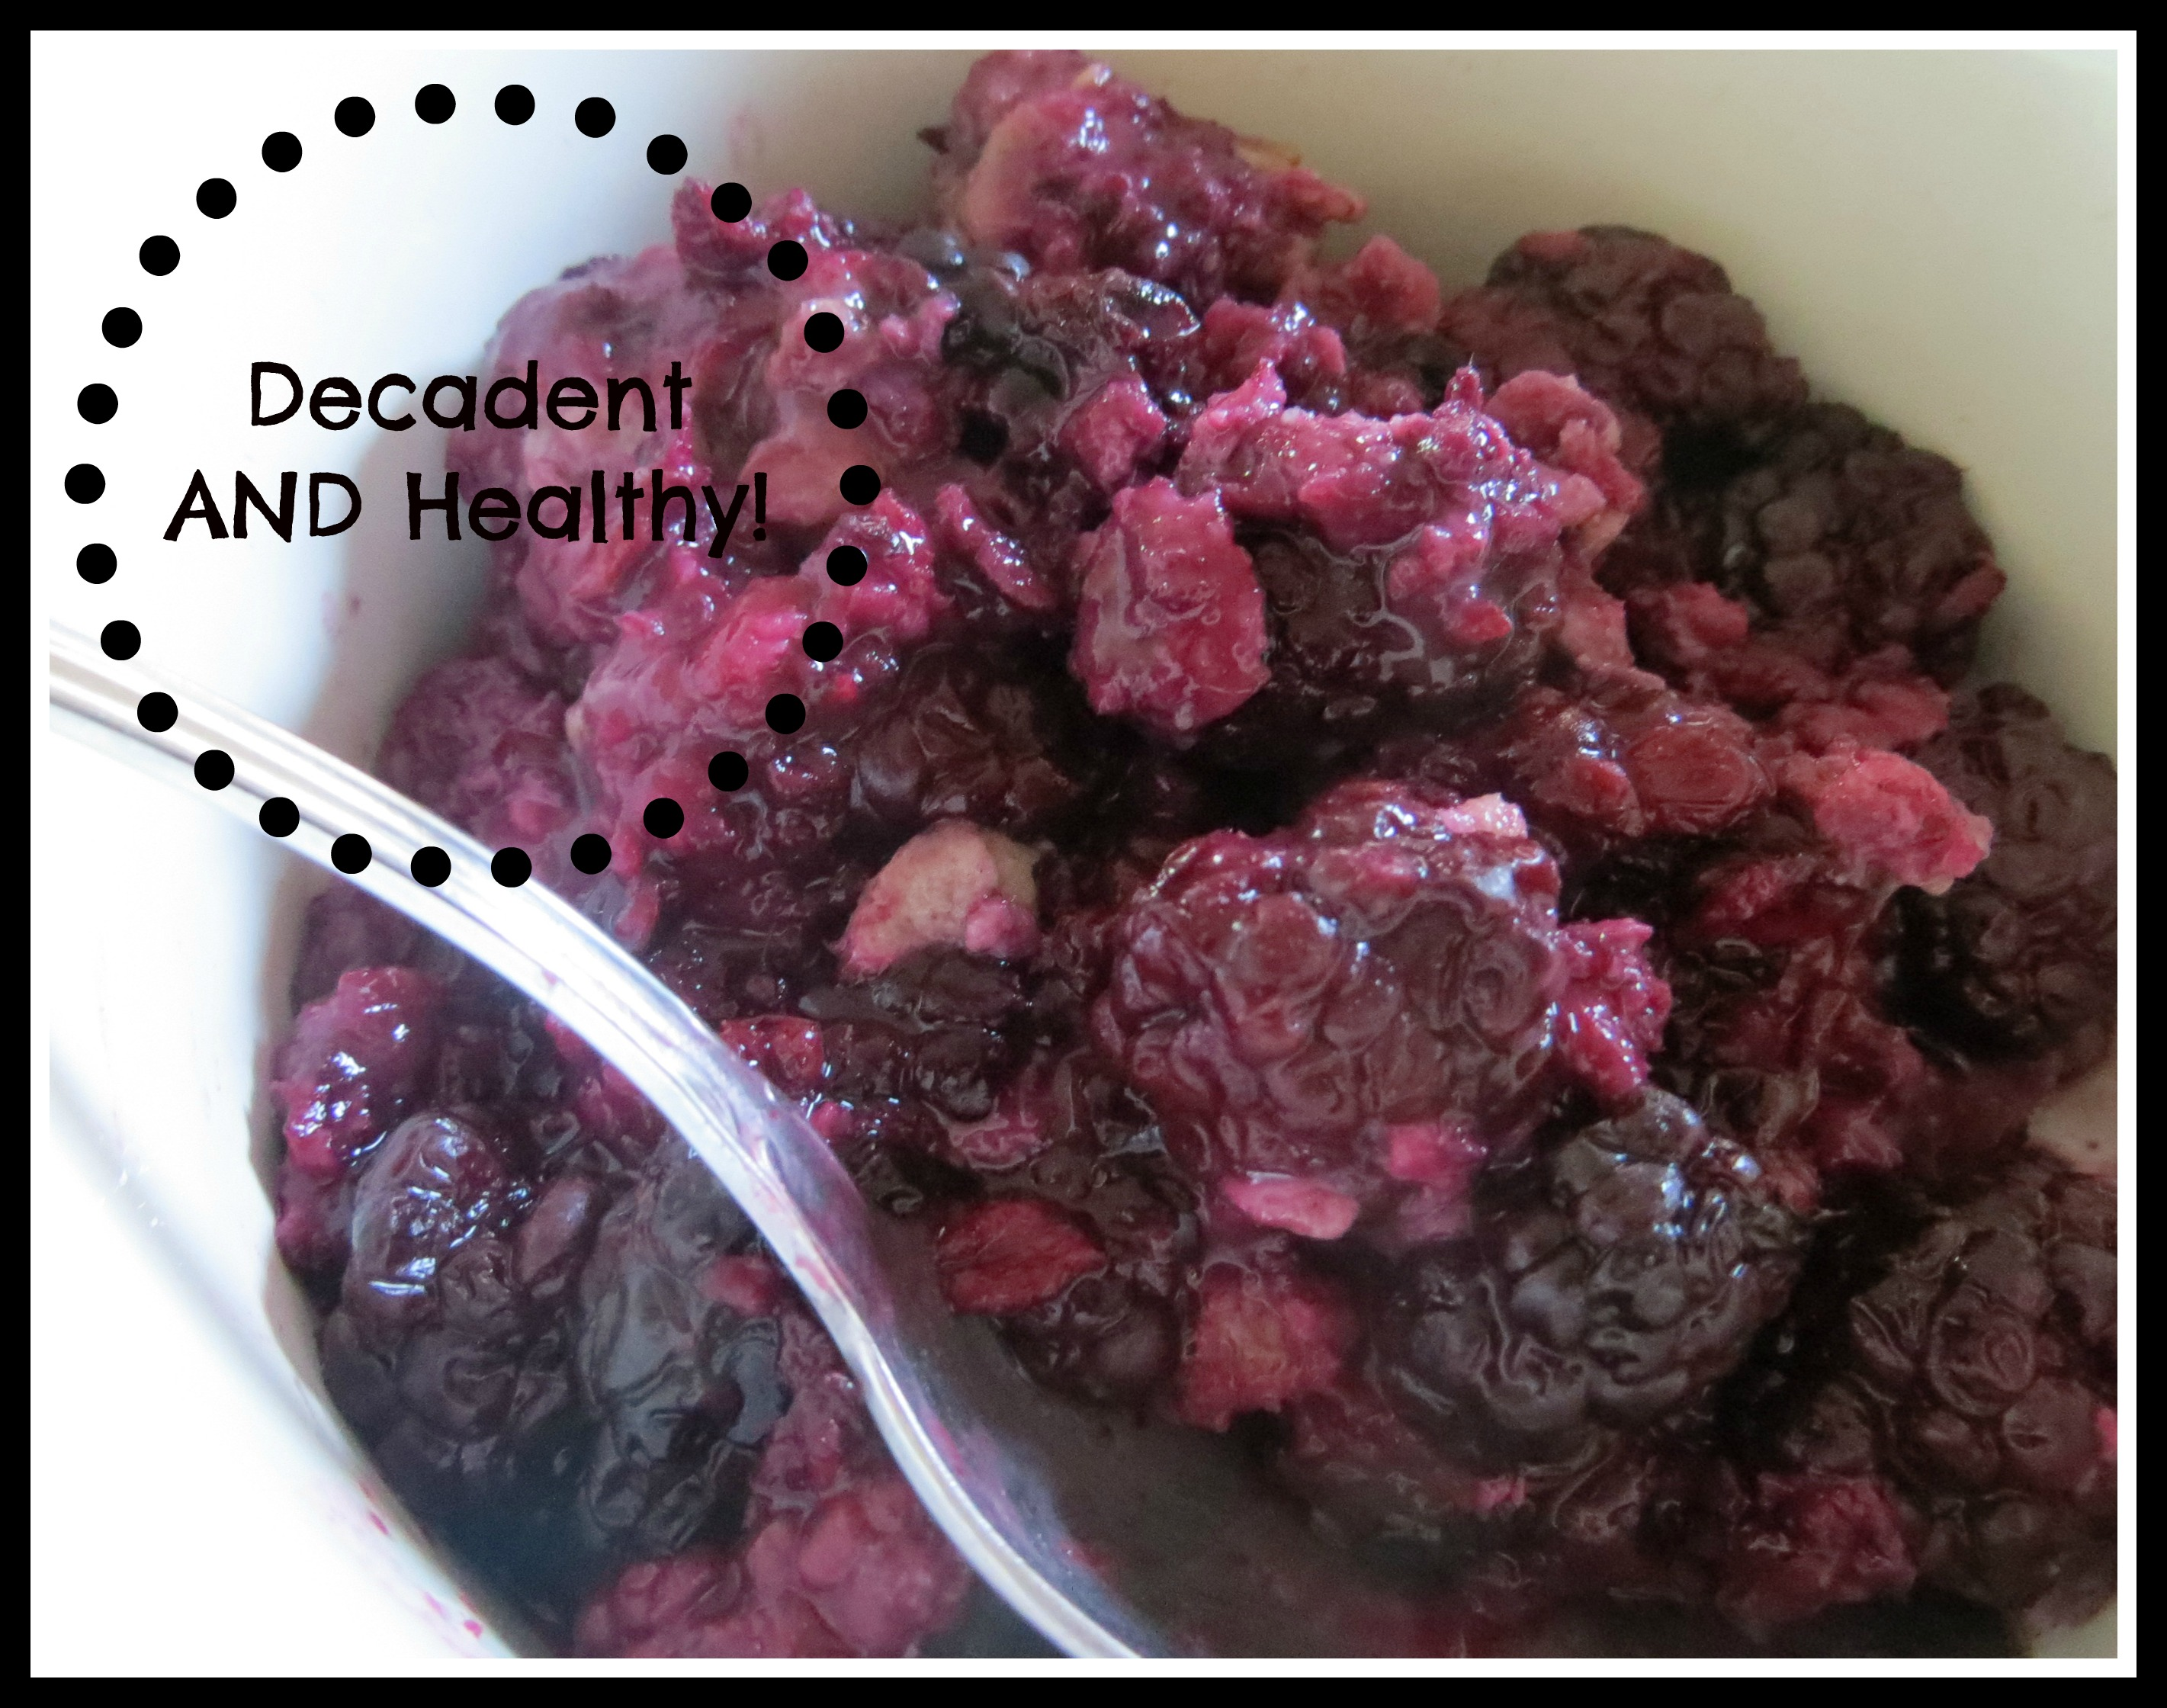 Want to enjoy a decadent (but healthy) treat?  Blackberry Bake!